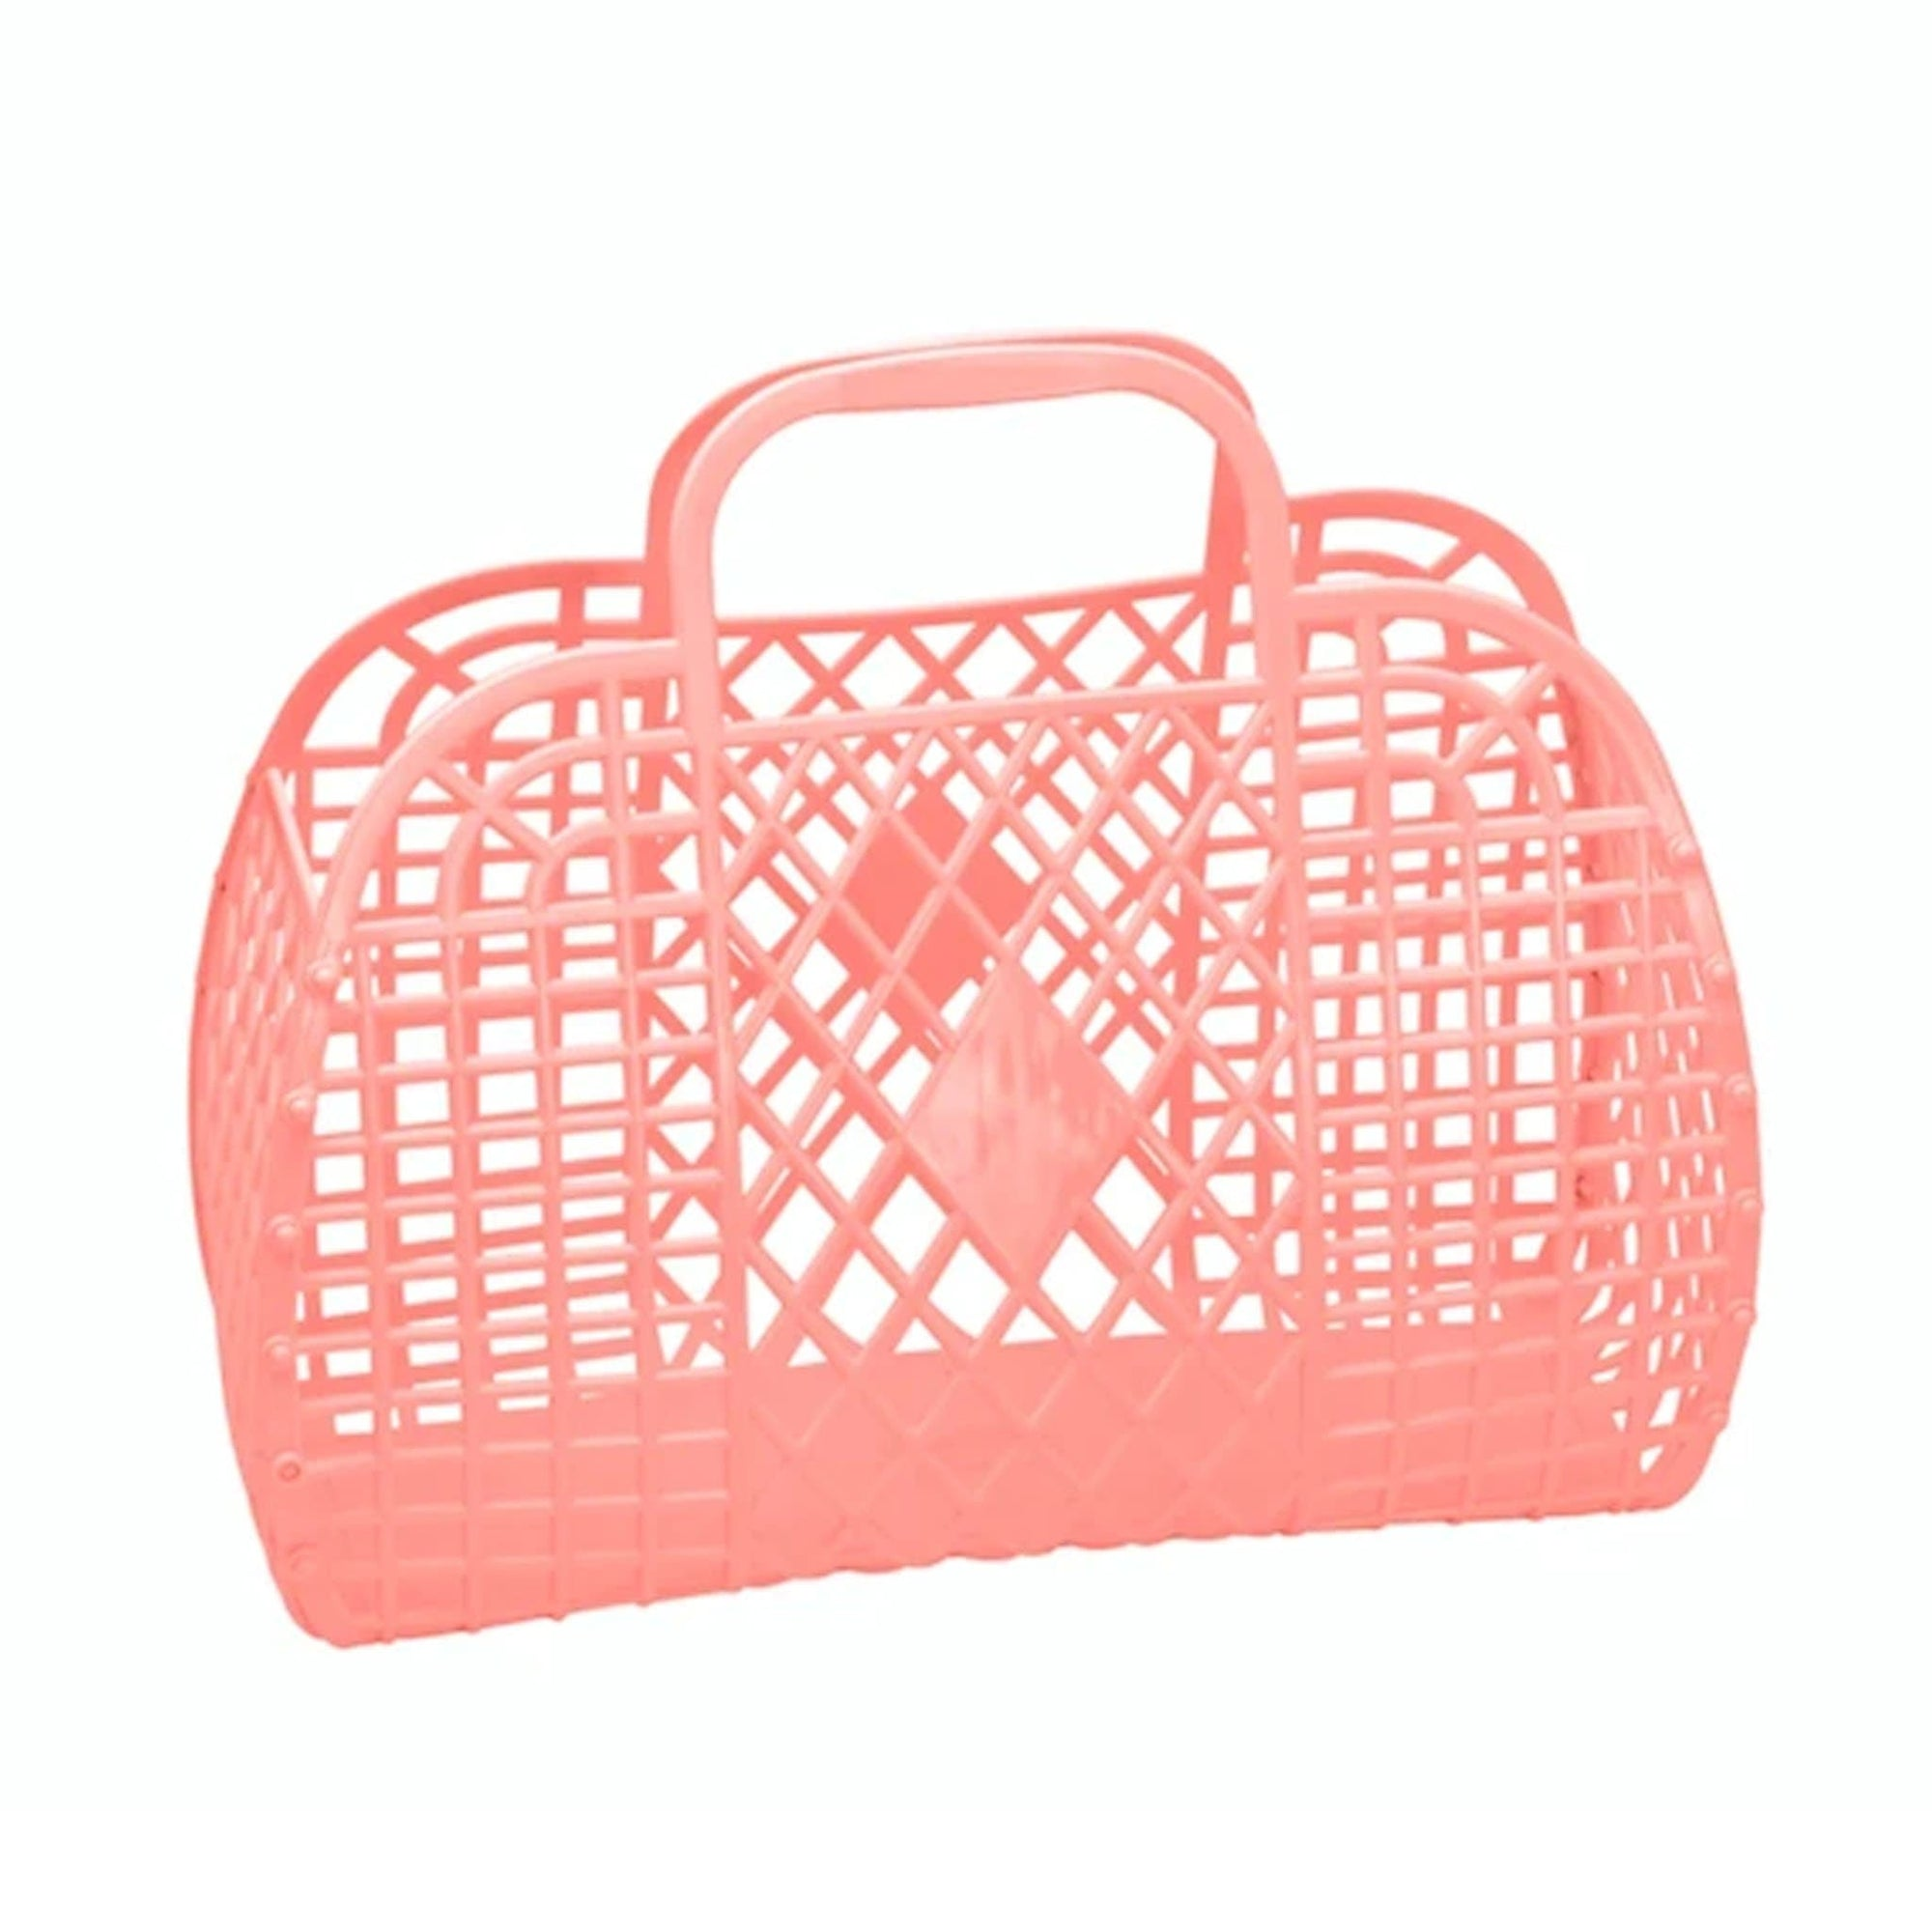 Sun Jellies Retro Basket Peach - Small